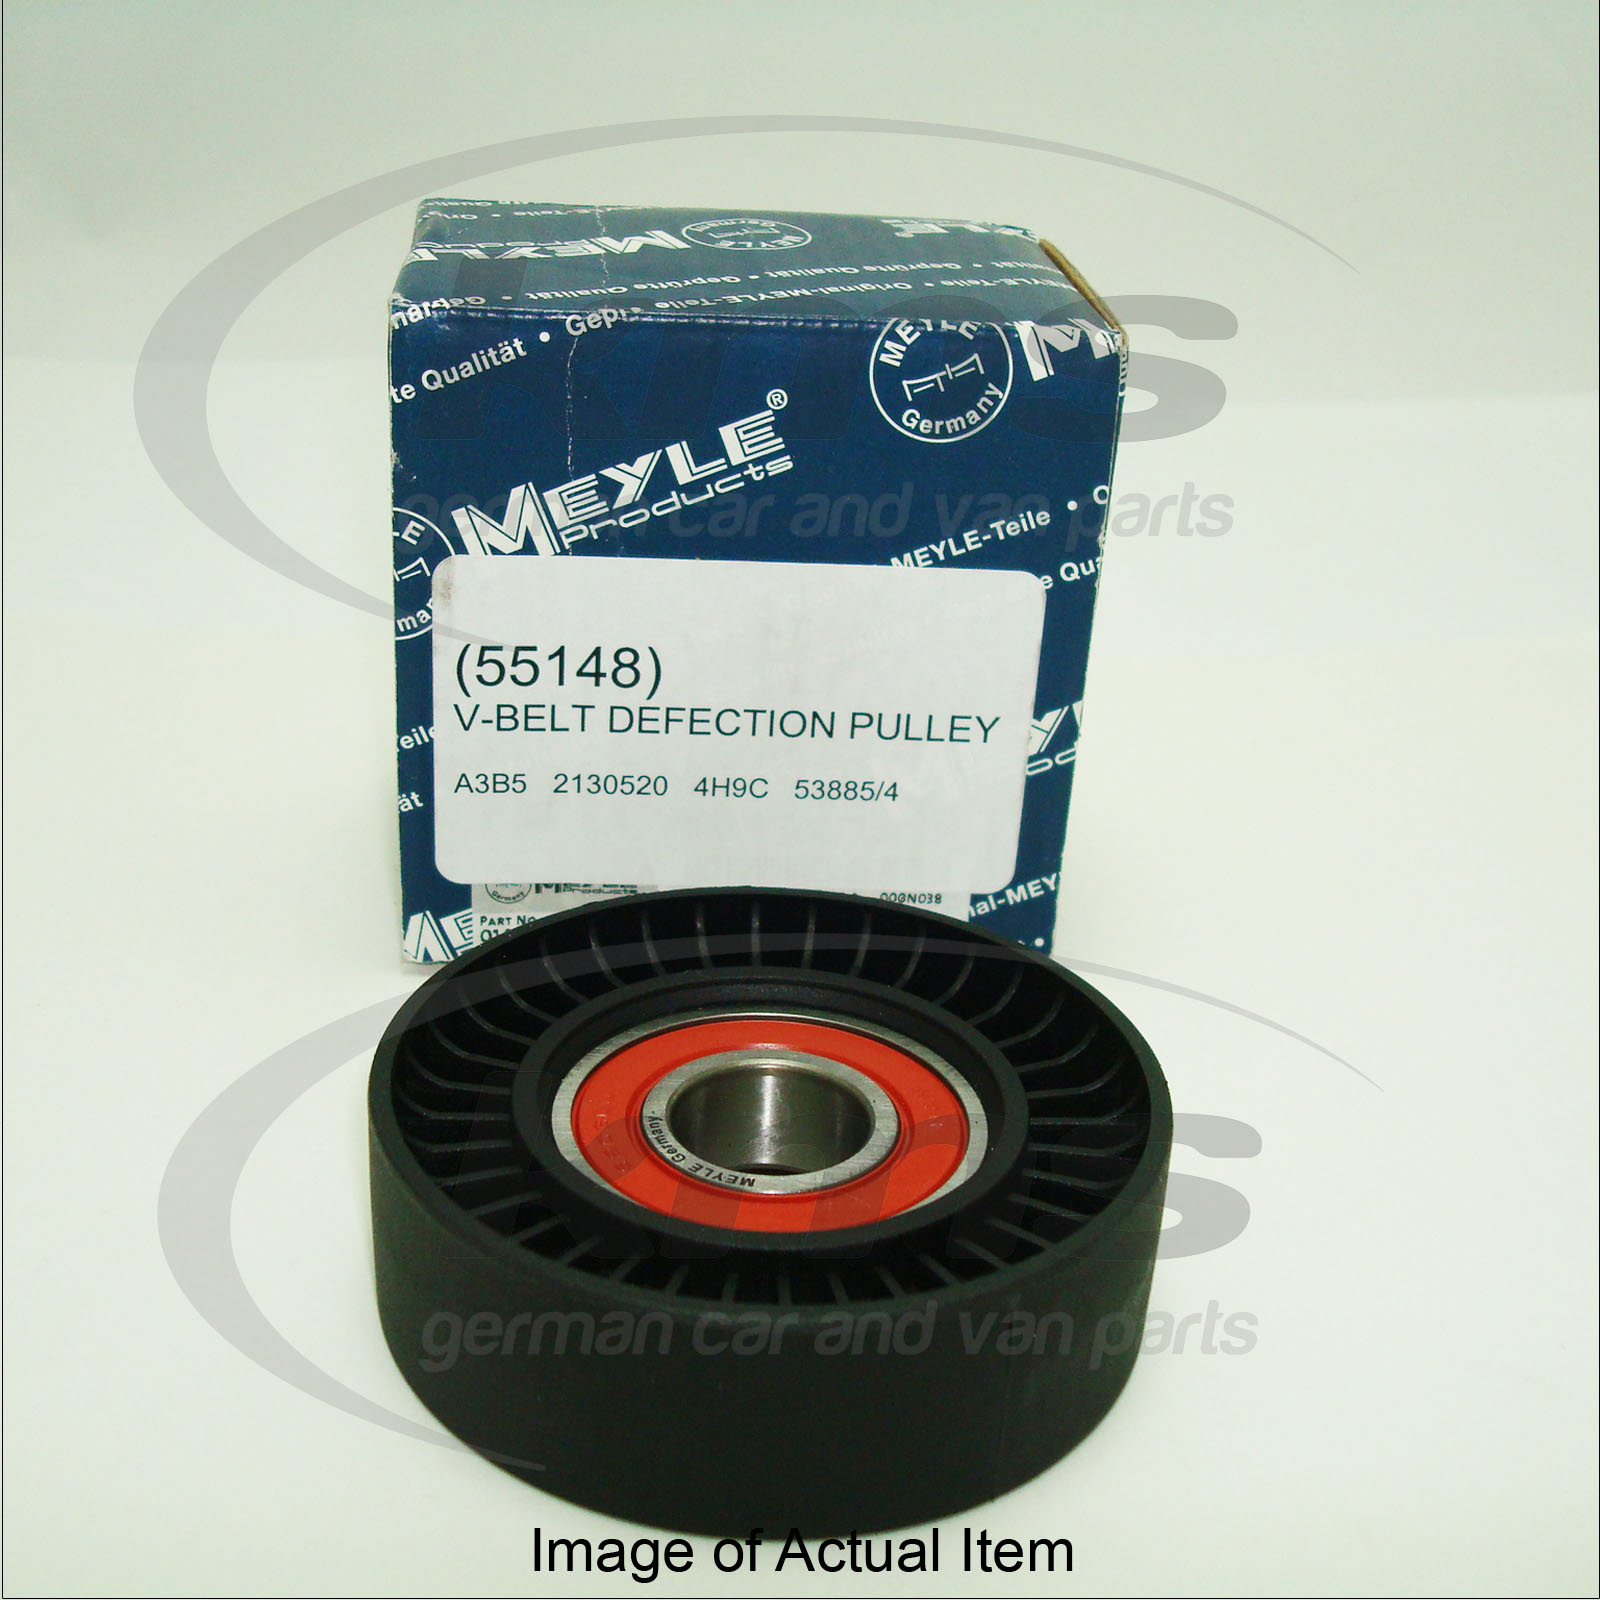 Poly v belt defection pulley a160cdi a170cdi 98 mercedes for Poly v belt for mercedes benz